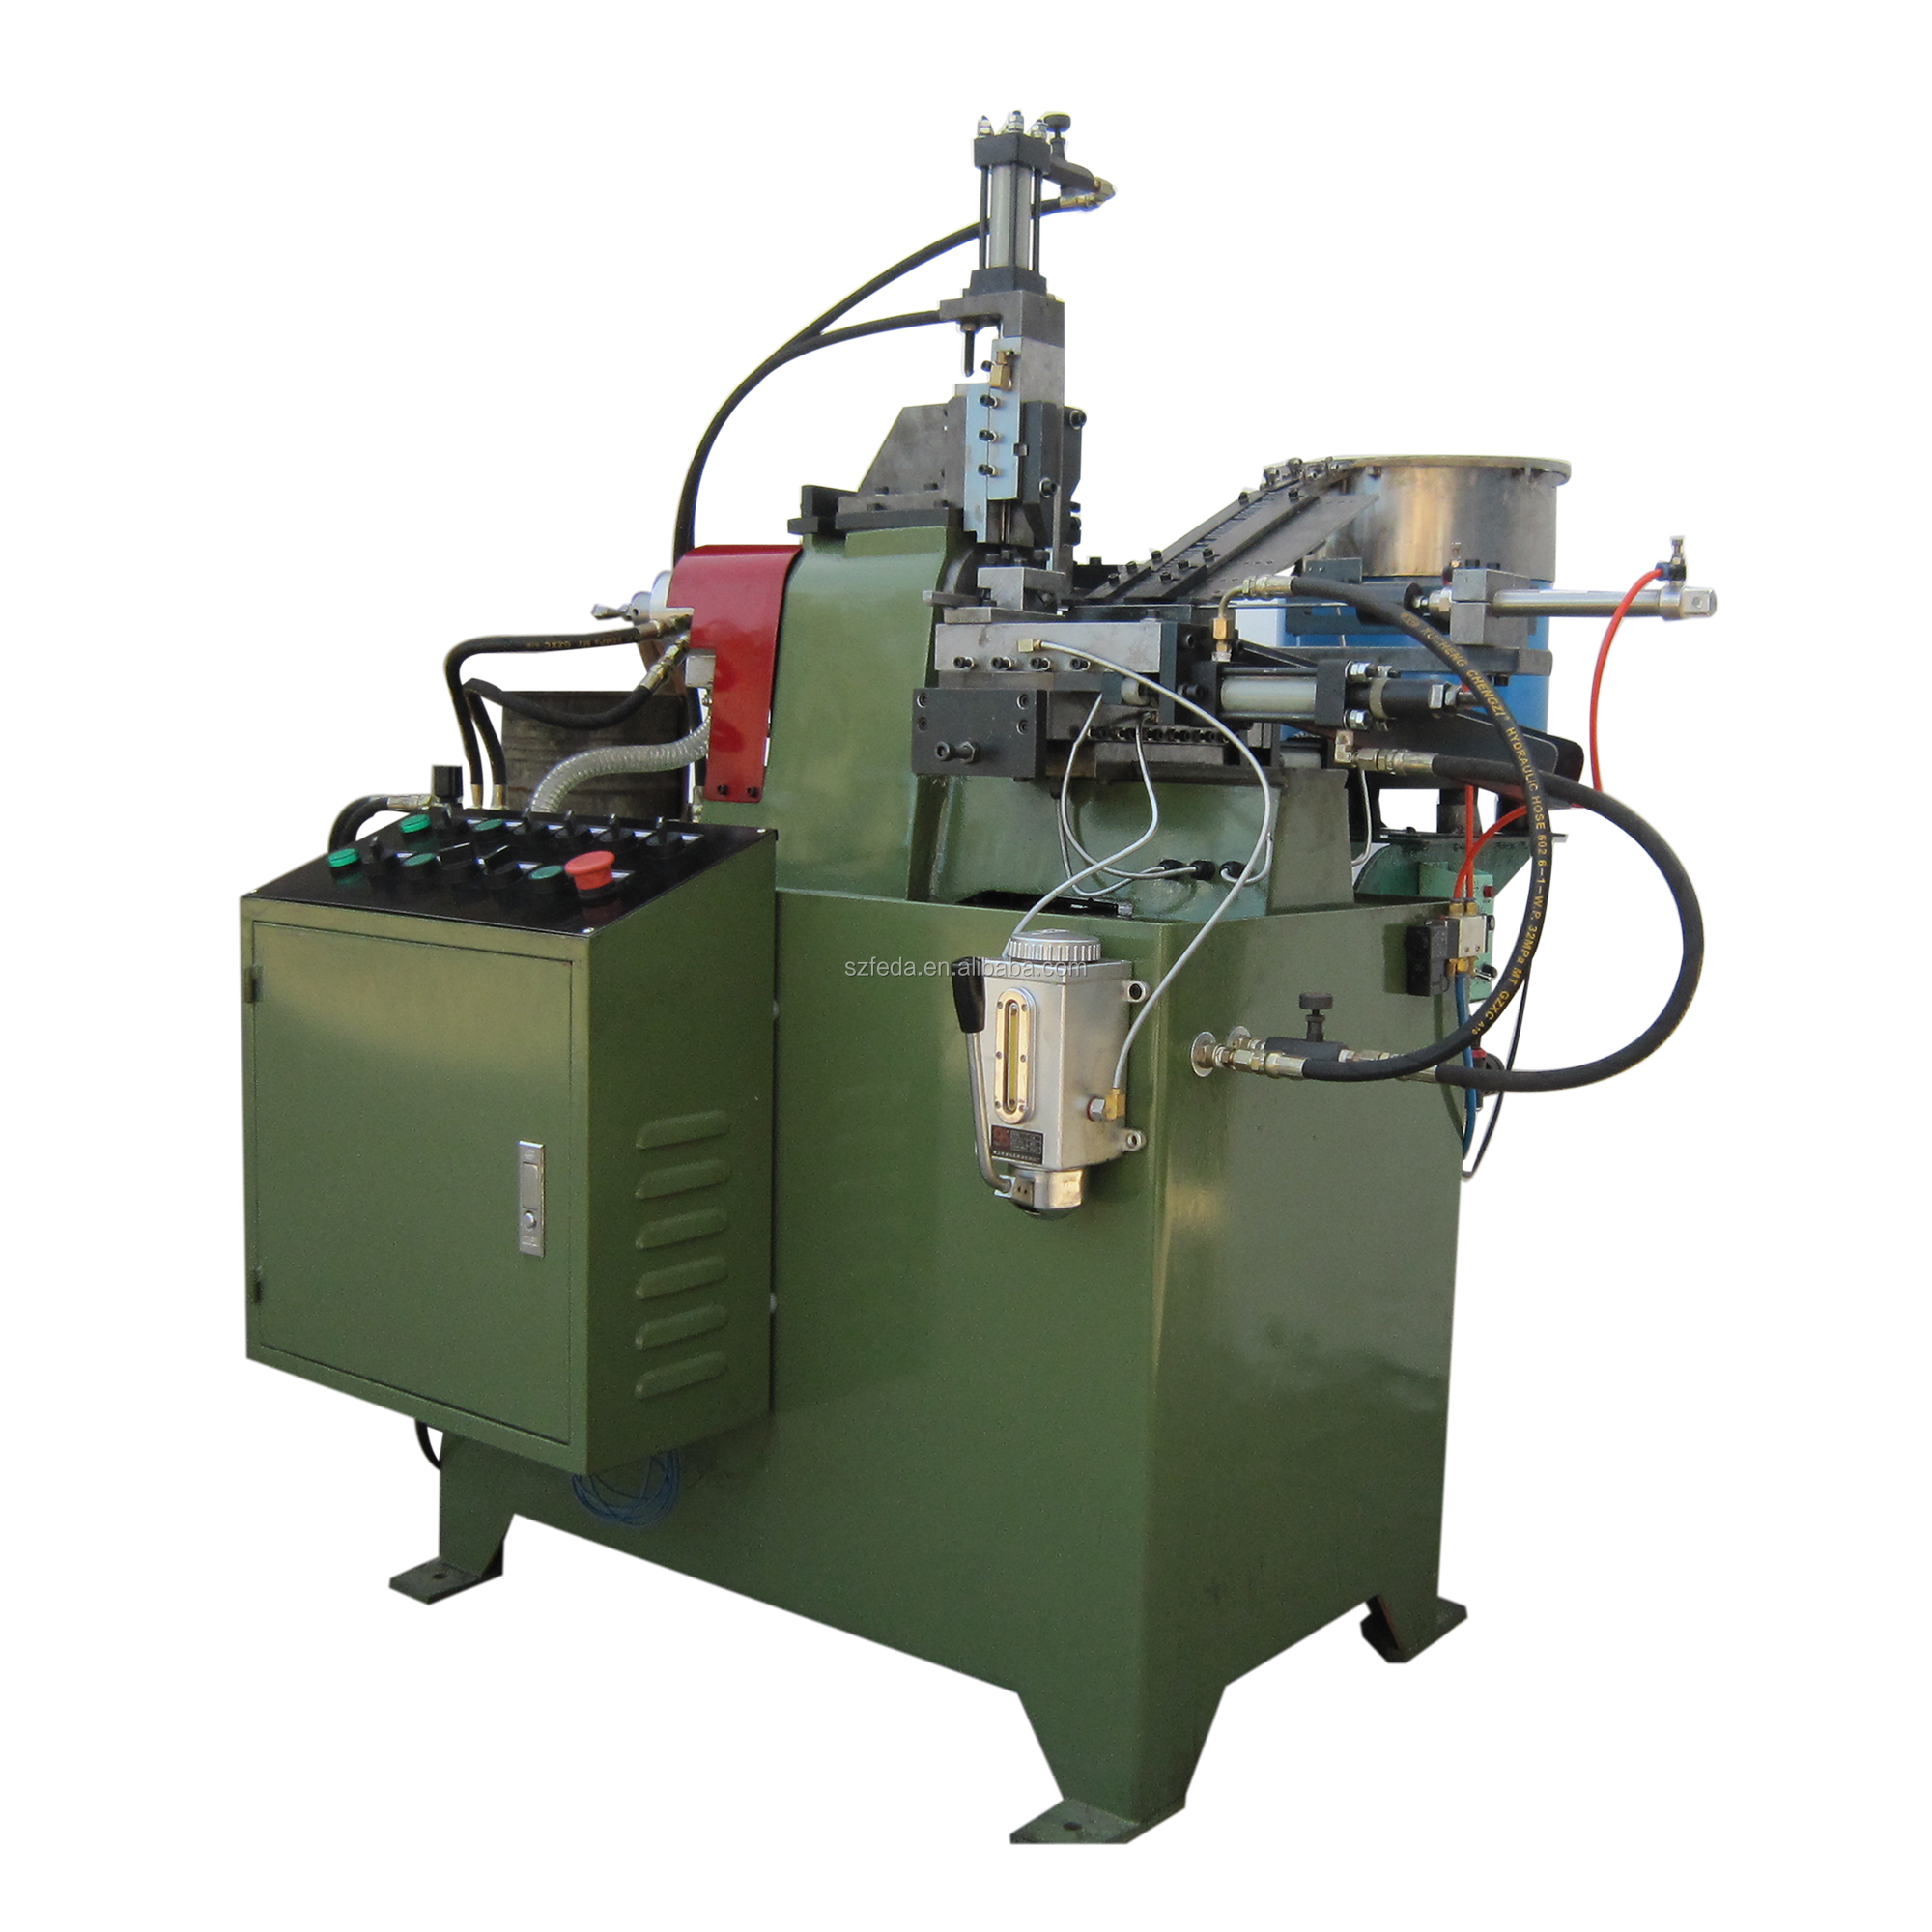 FEDA high speed automatic peeling machine cnc lathe machine price  vertical cutting machine